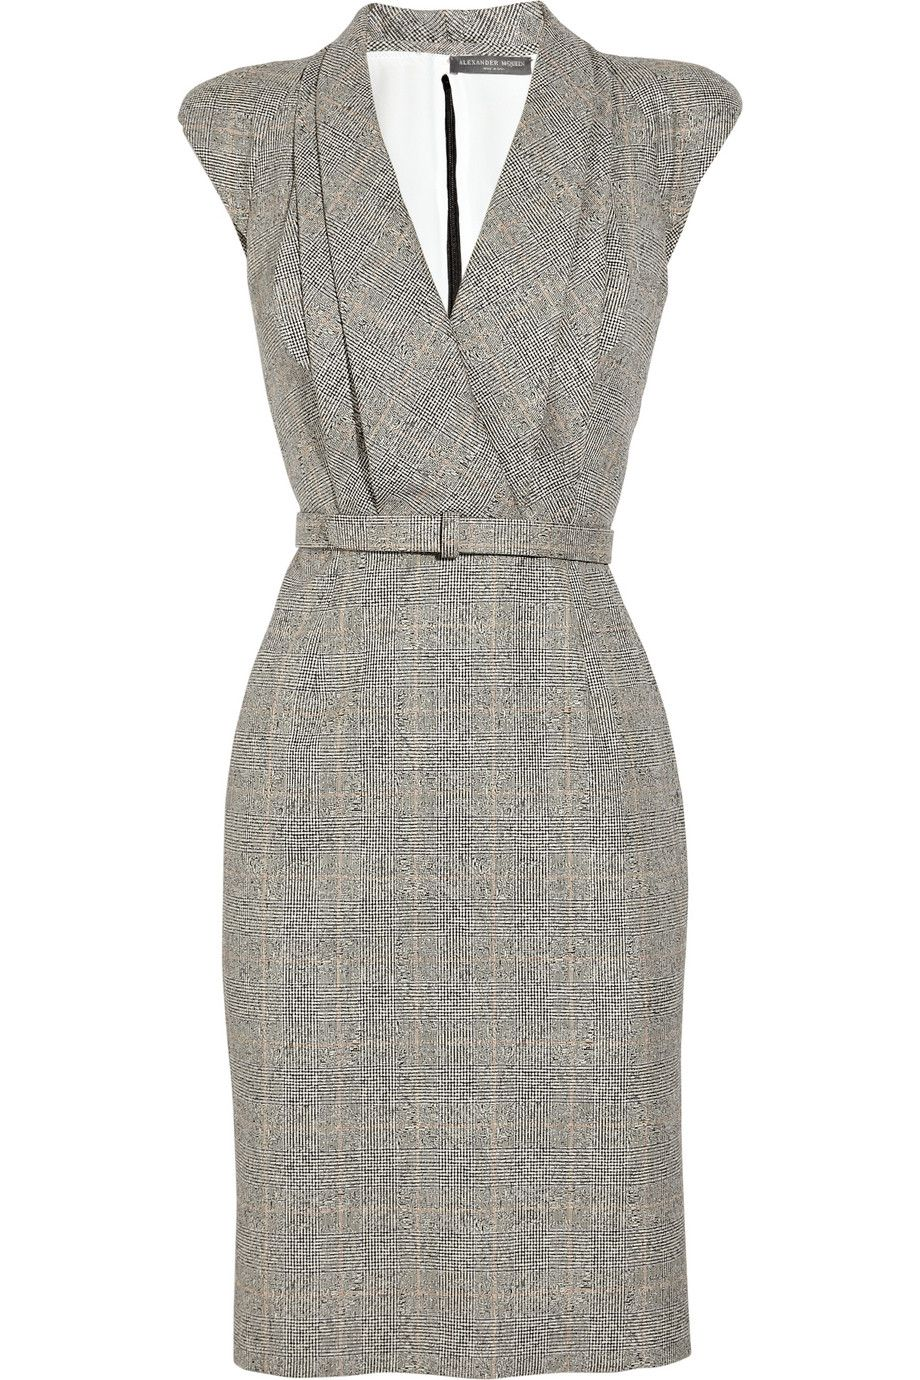 48b2d3dfd0b248 this gorgeous little alexander mcqueen frock is a STEAL at  2670 (why can t  money grown on trees )